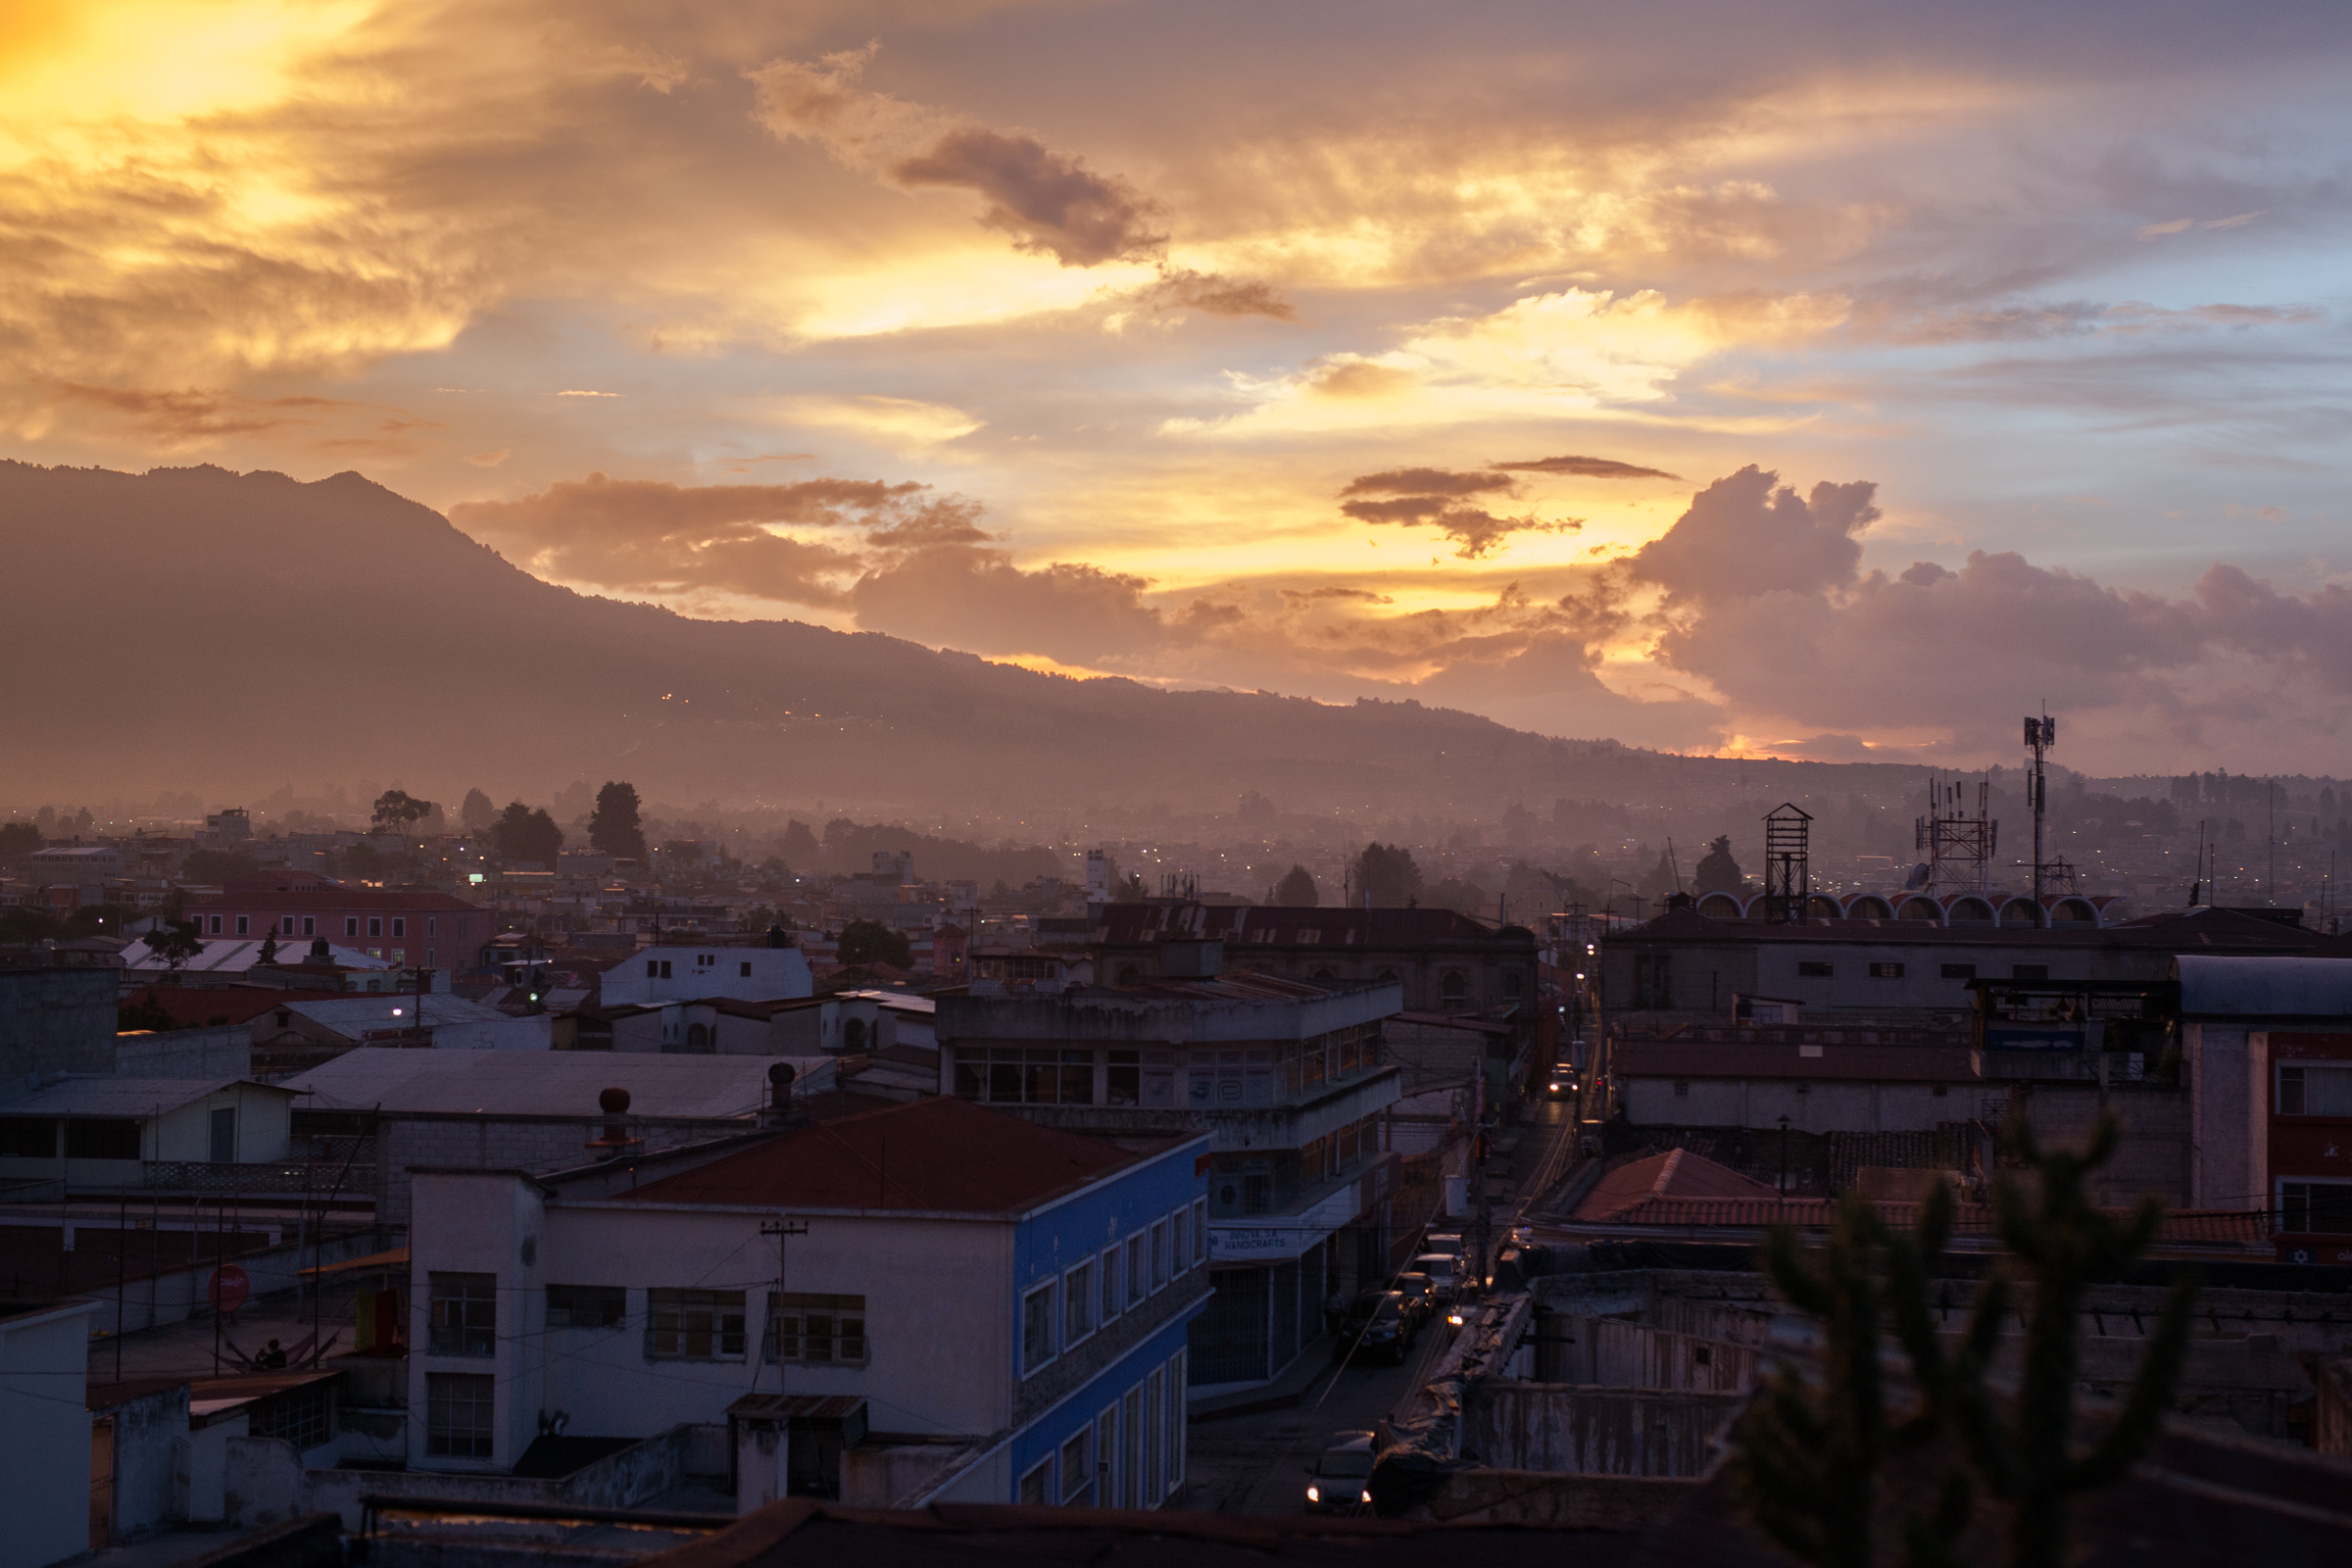 View over Quetzaltenango (Xela), at sundown.